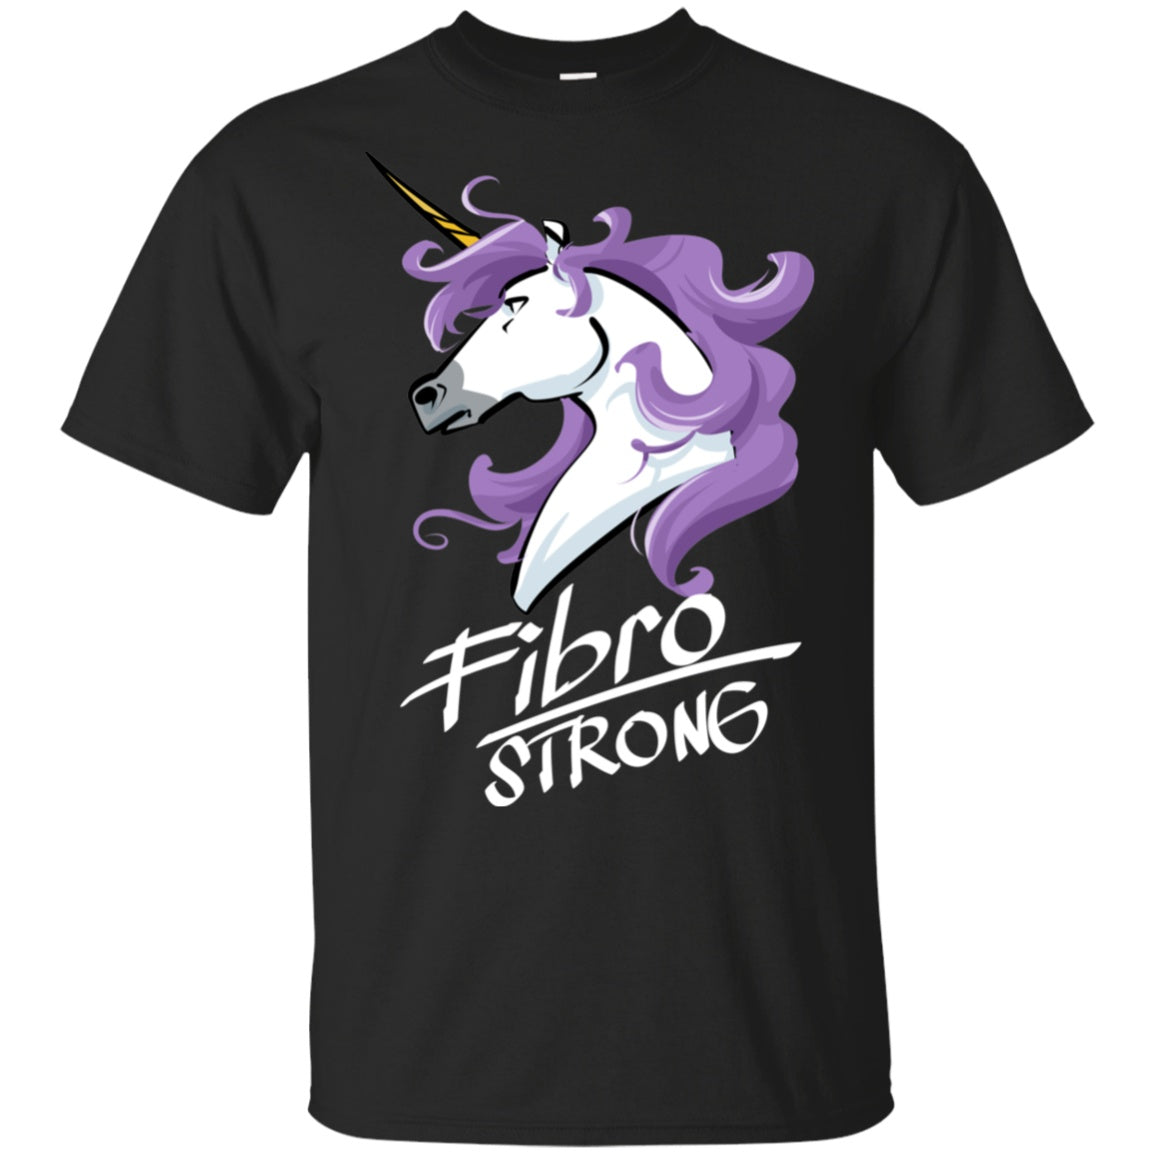 Fibro Strong Unicorn Cotton Unisex Shirt - The Unchargeables